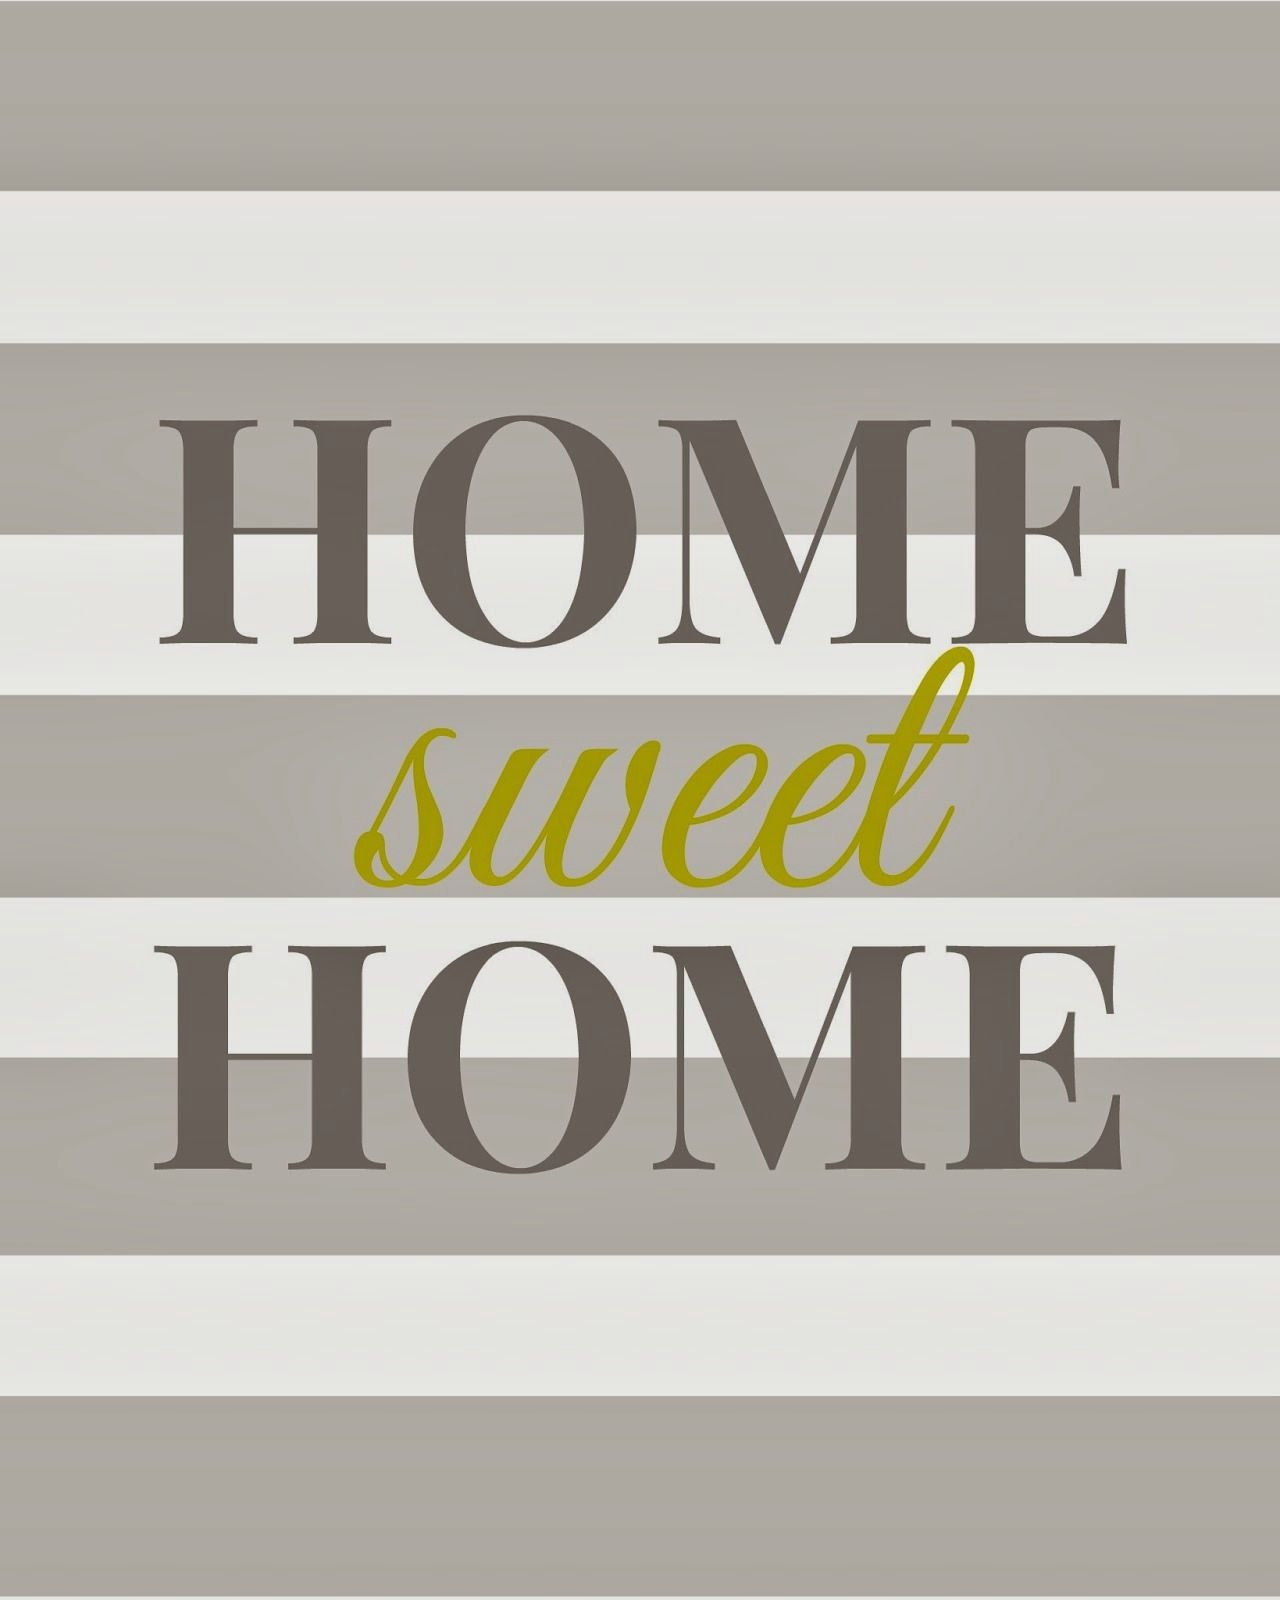 Home Sweet Home - Free Printable | Printables + Fonts | Home Decor - Home Sweet Home Free Printable